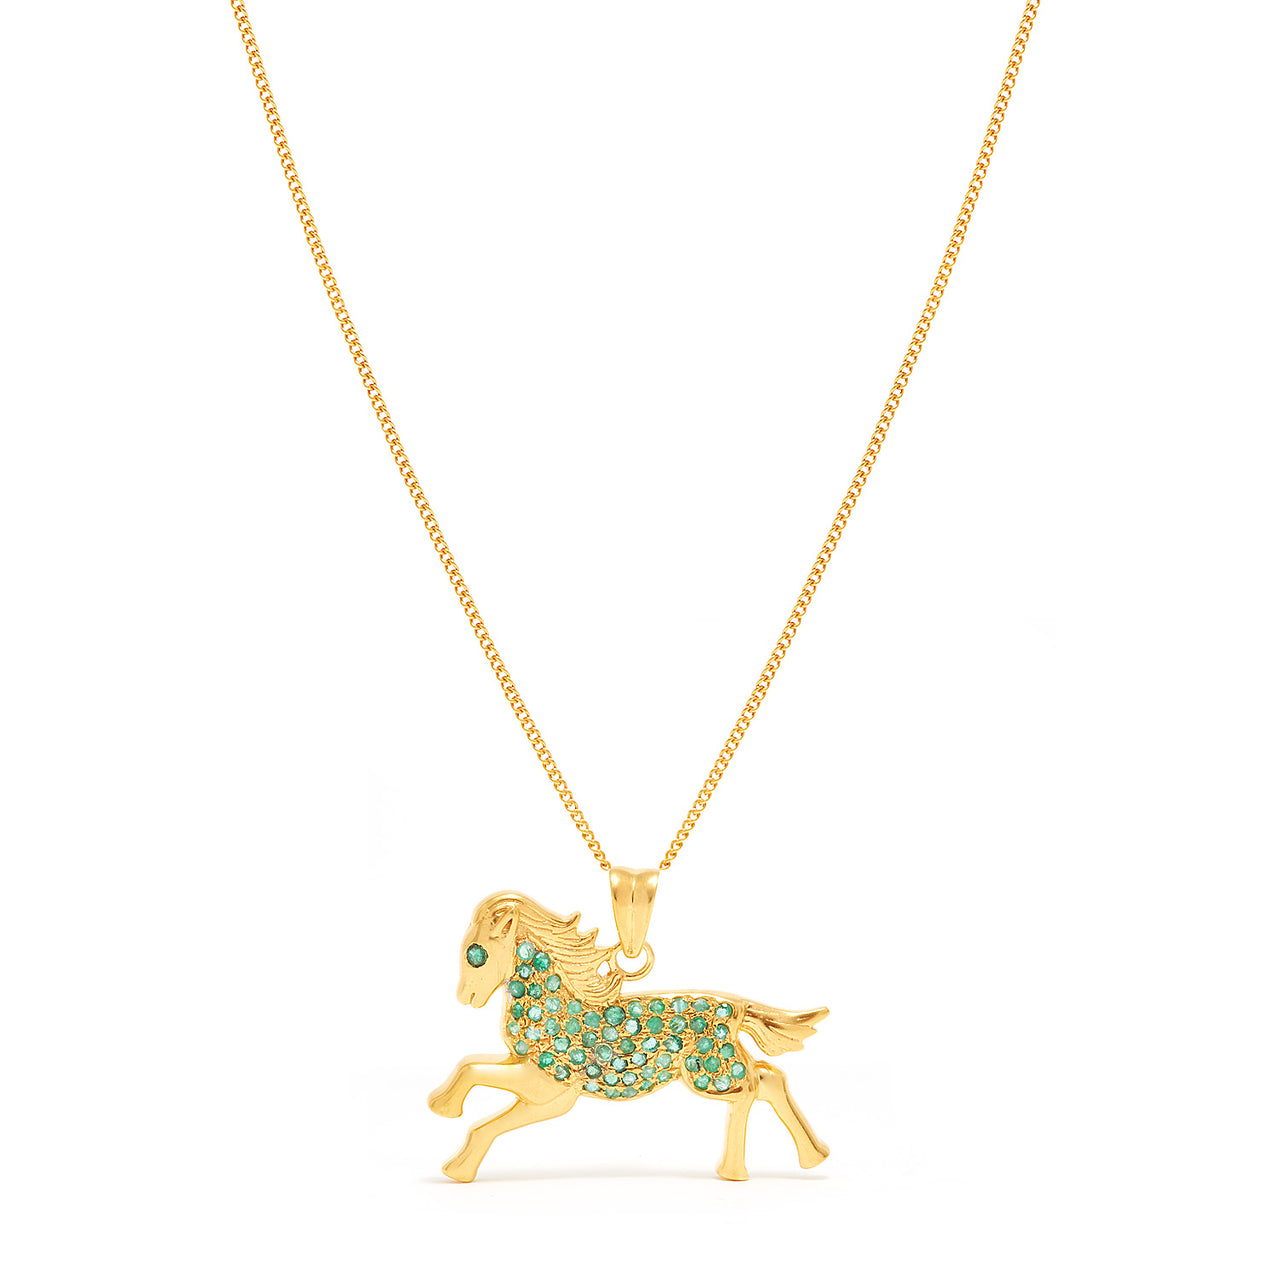 Emerald Cheval Pendant-Necklace-Jaipur Atelier